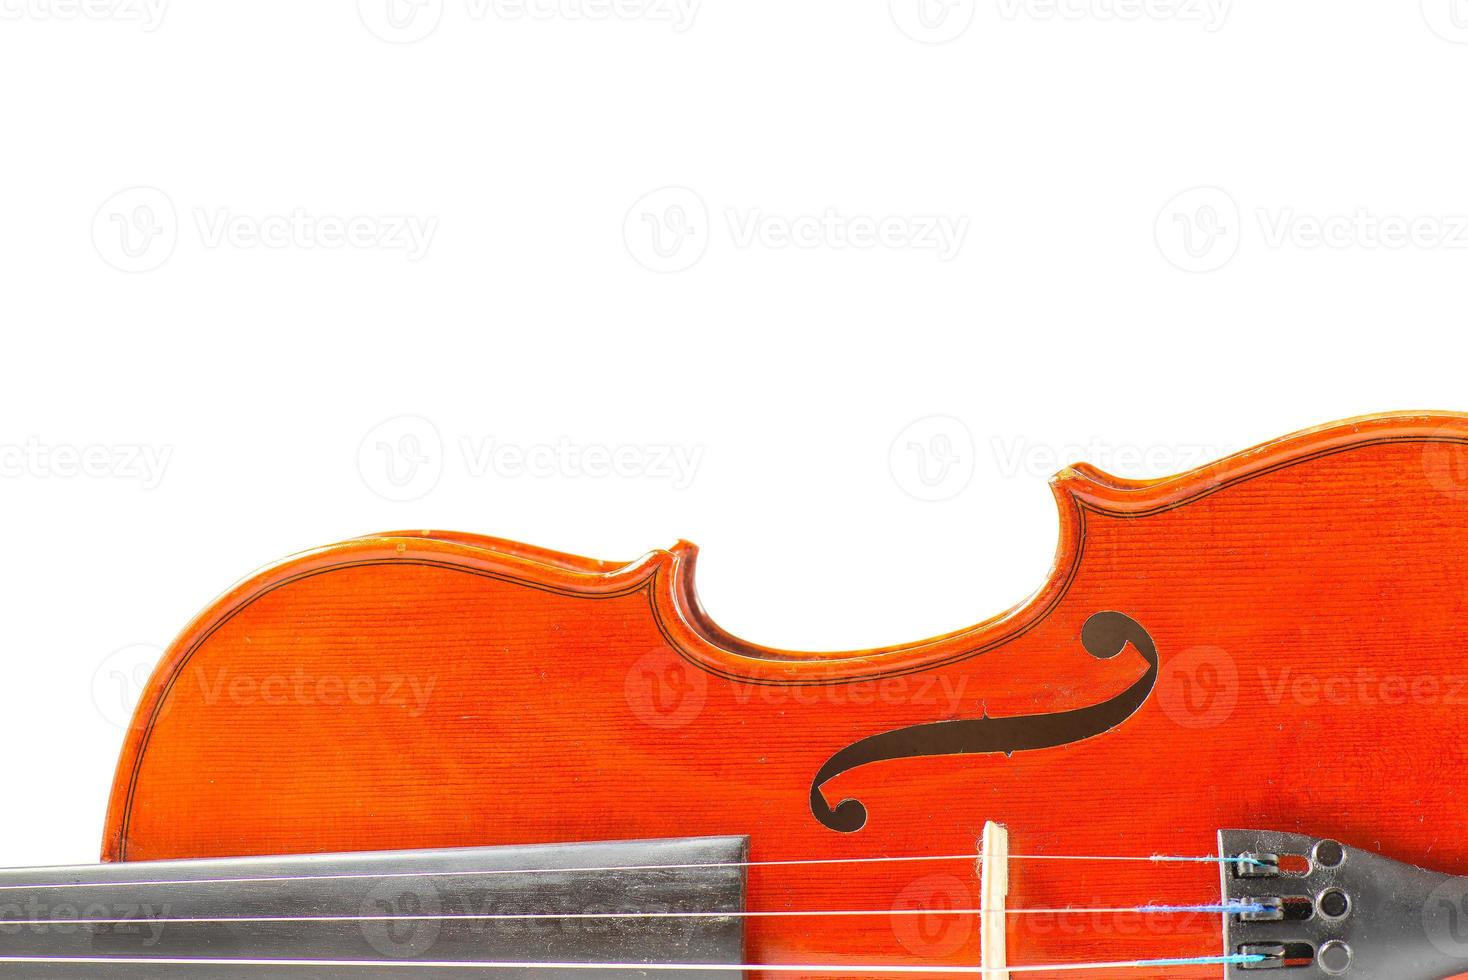 Detail of red violin photo